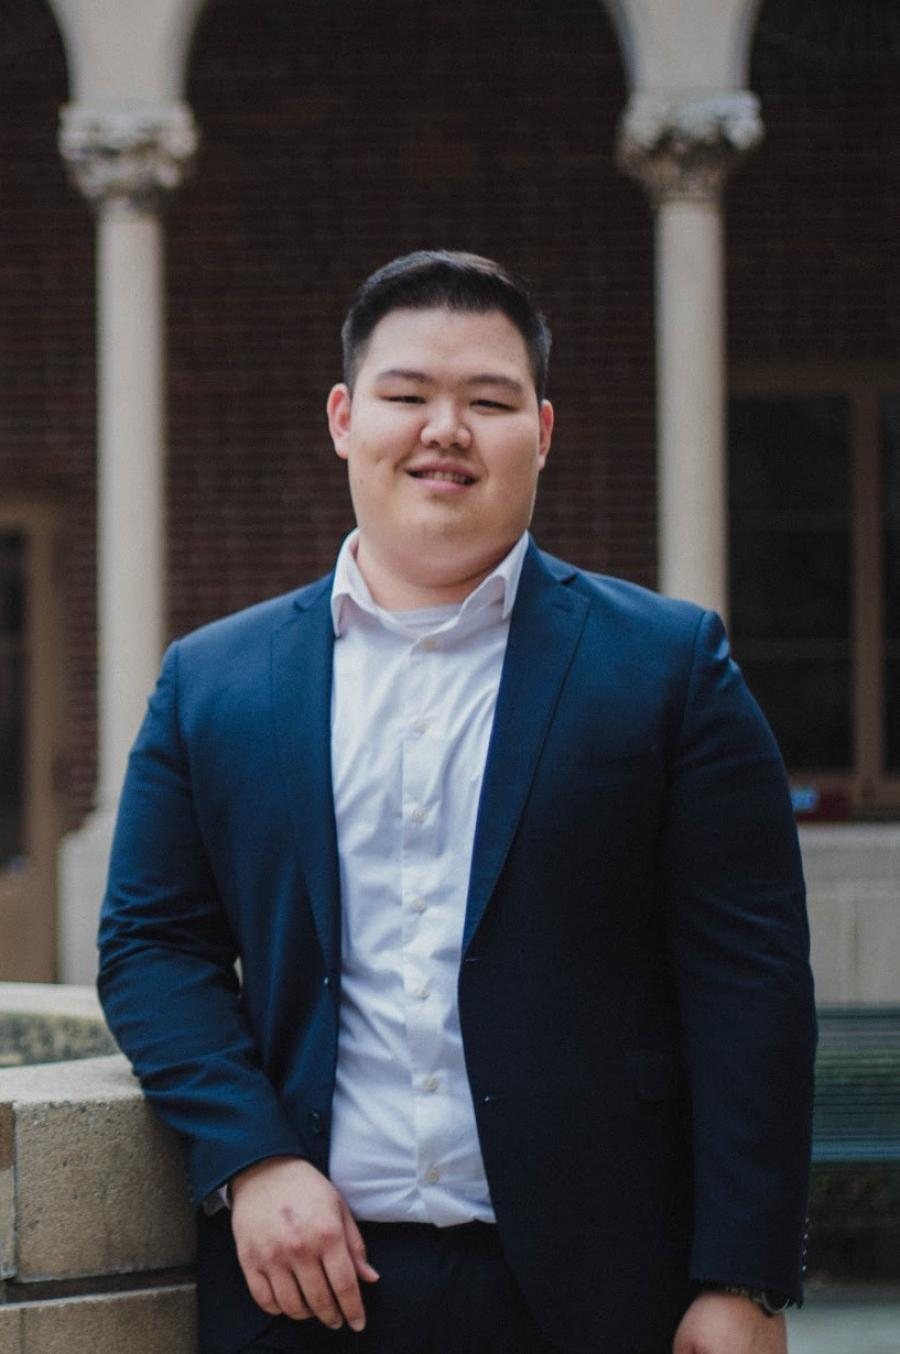 Lyndon Chang is pursuing a degree in public policy and administration from the University of Southern California.